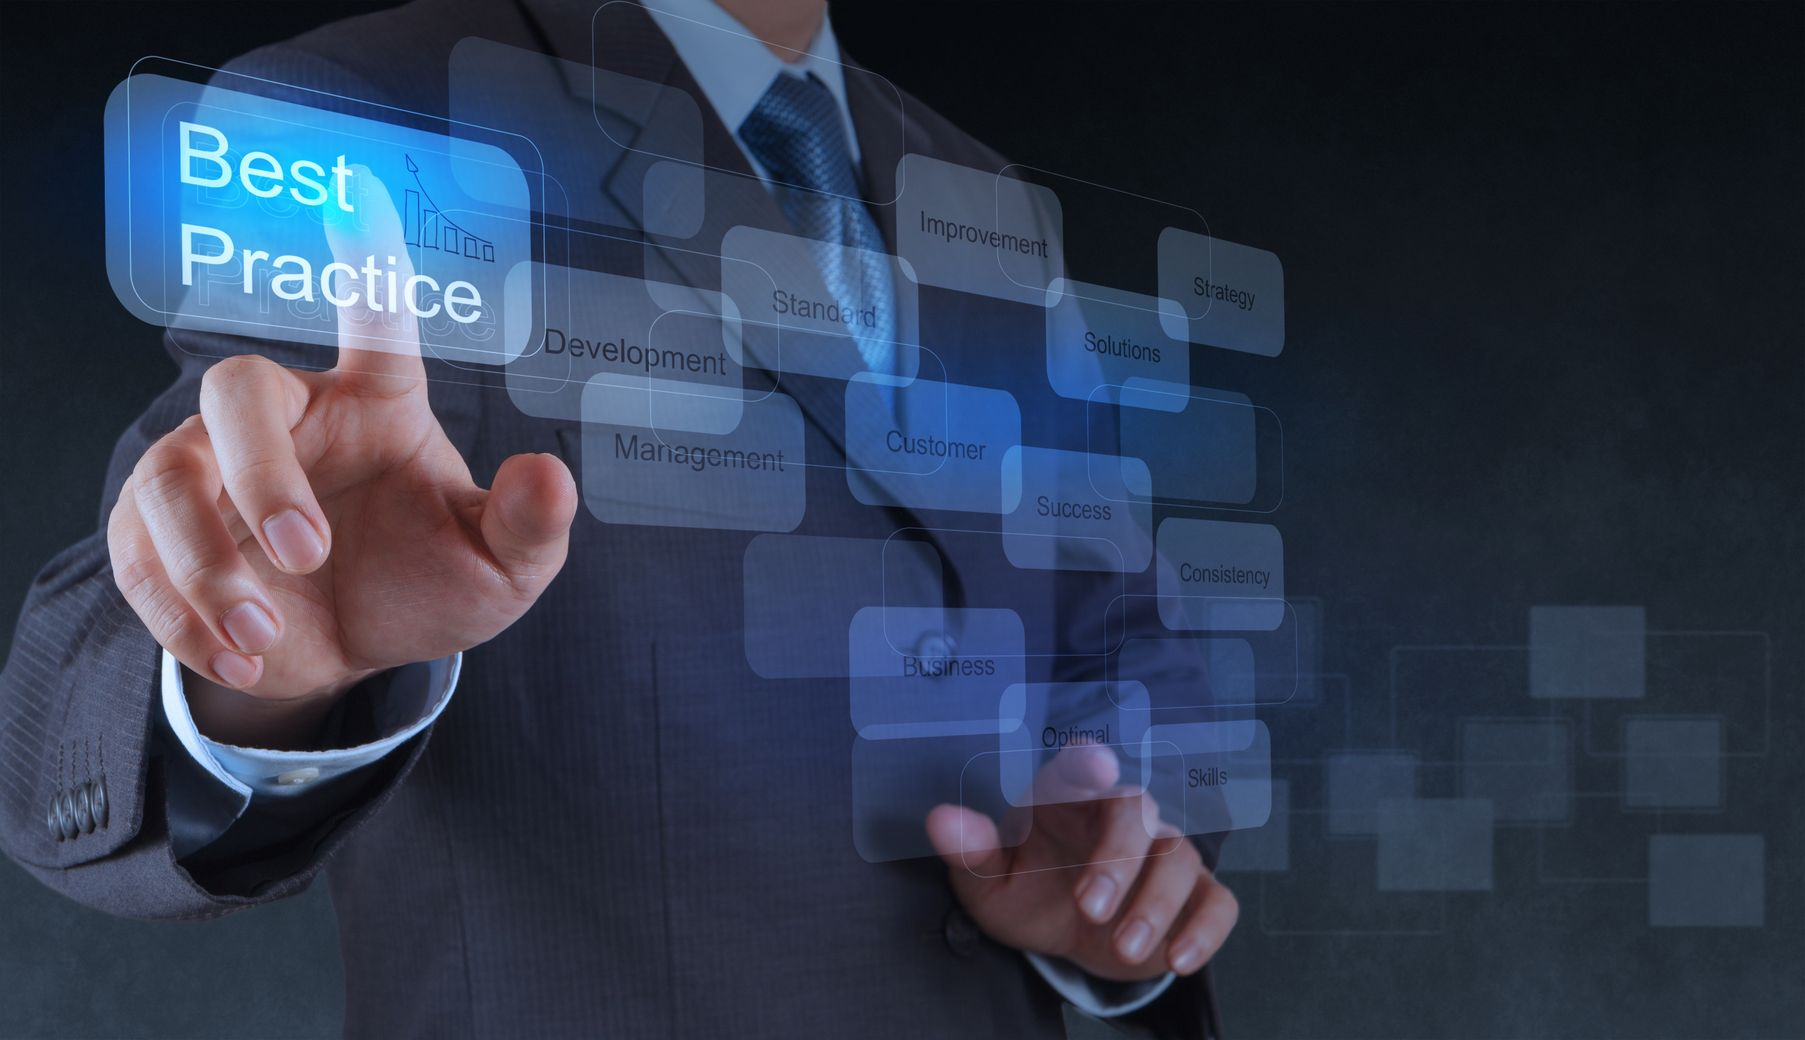 17156973 - businessman hand shows best practice word on virtual screen as concept